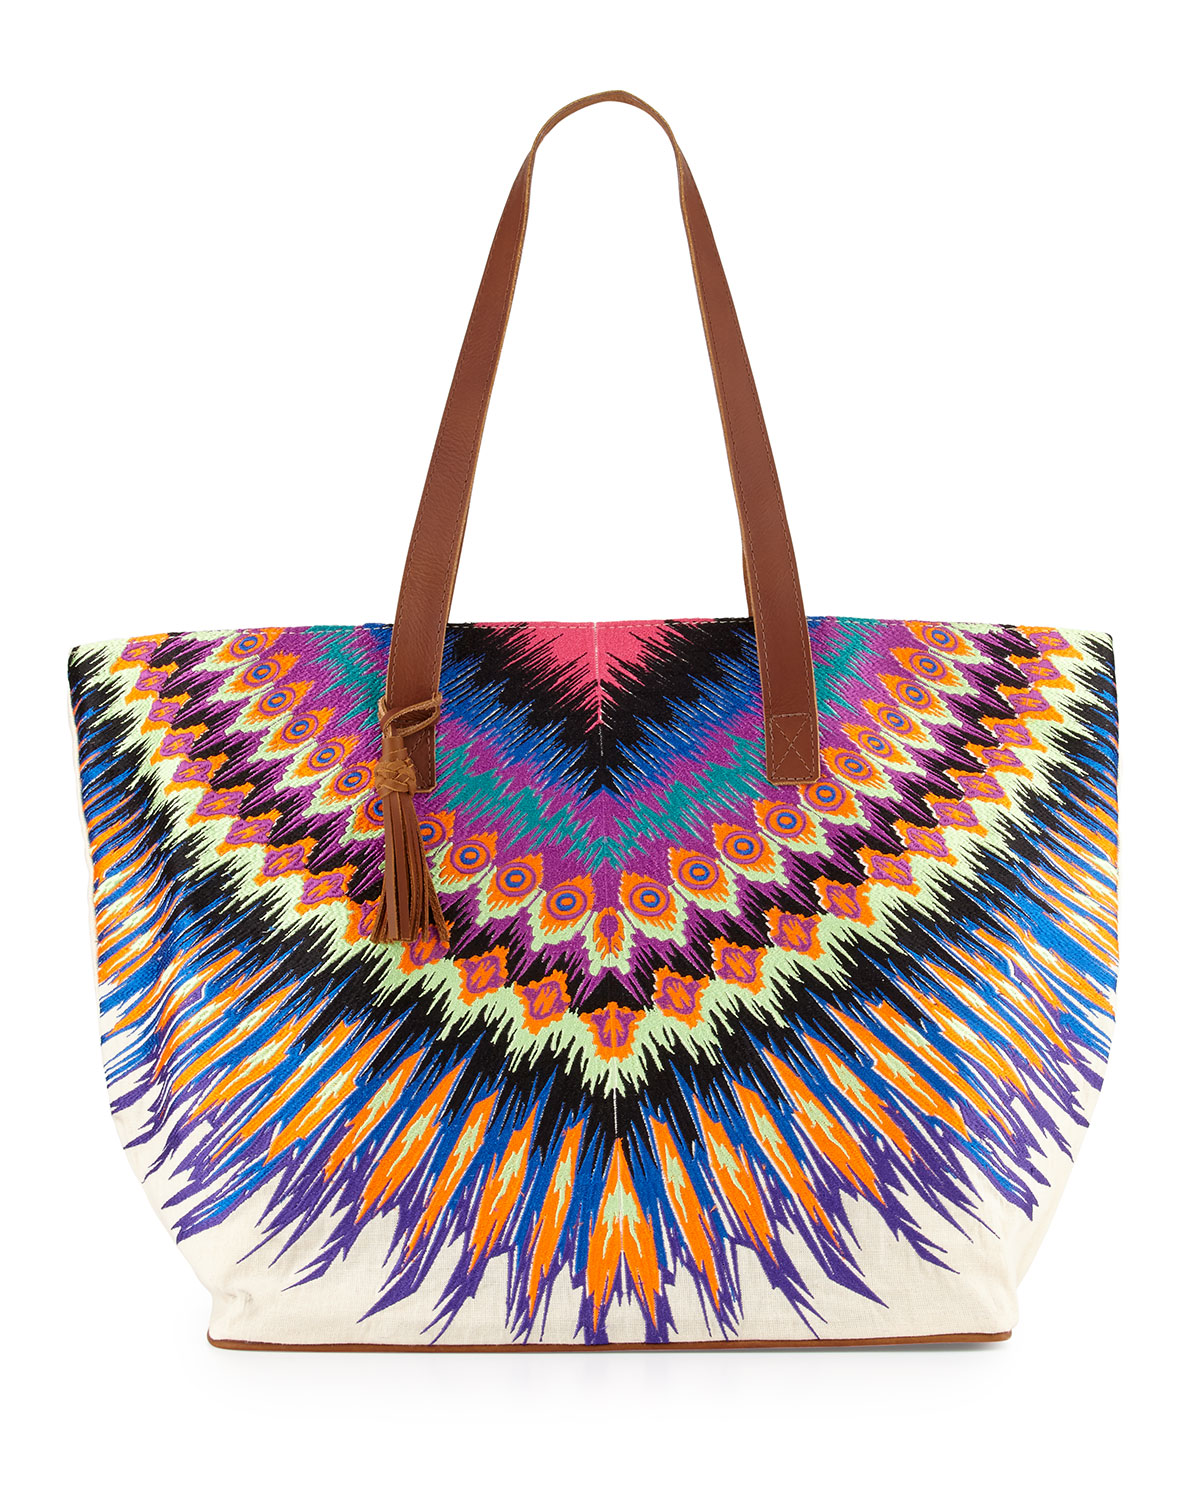 Printed Beach Tote Bag, African Rays - PilyQ